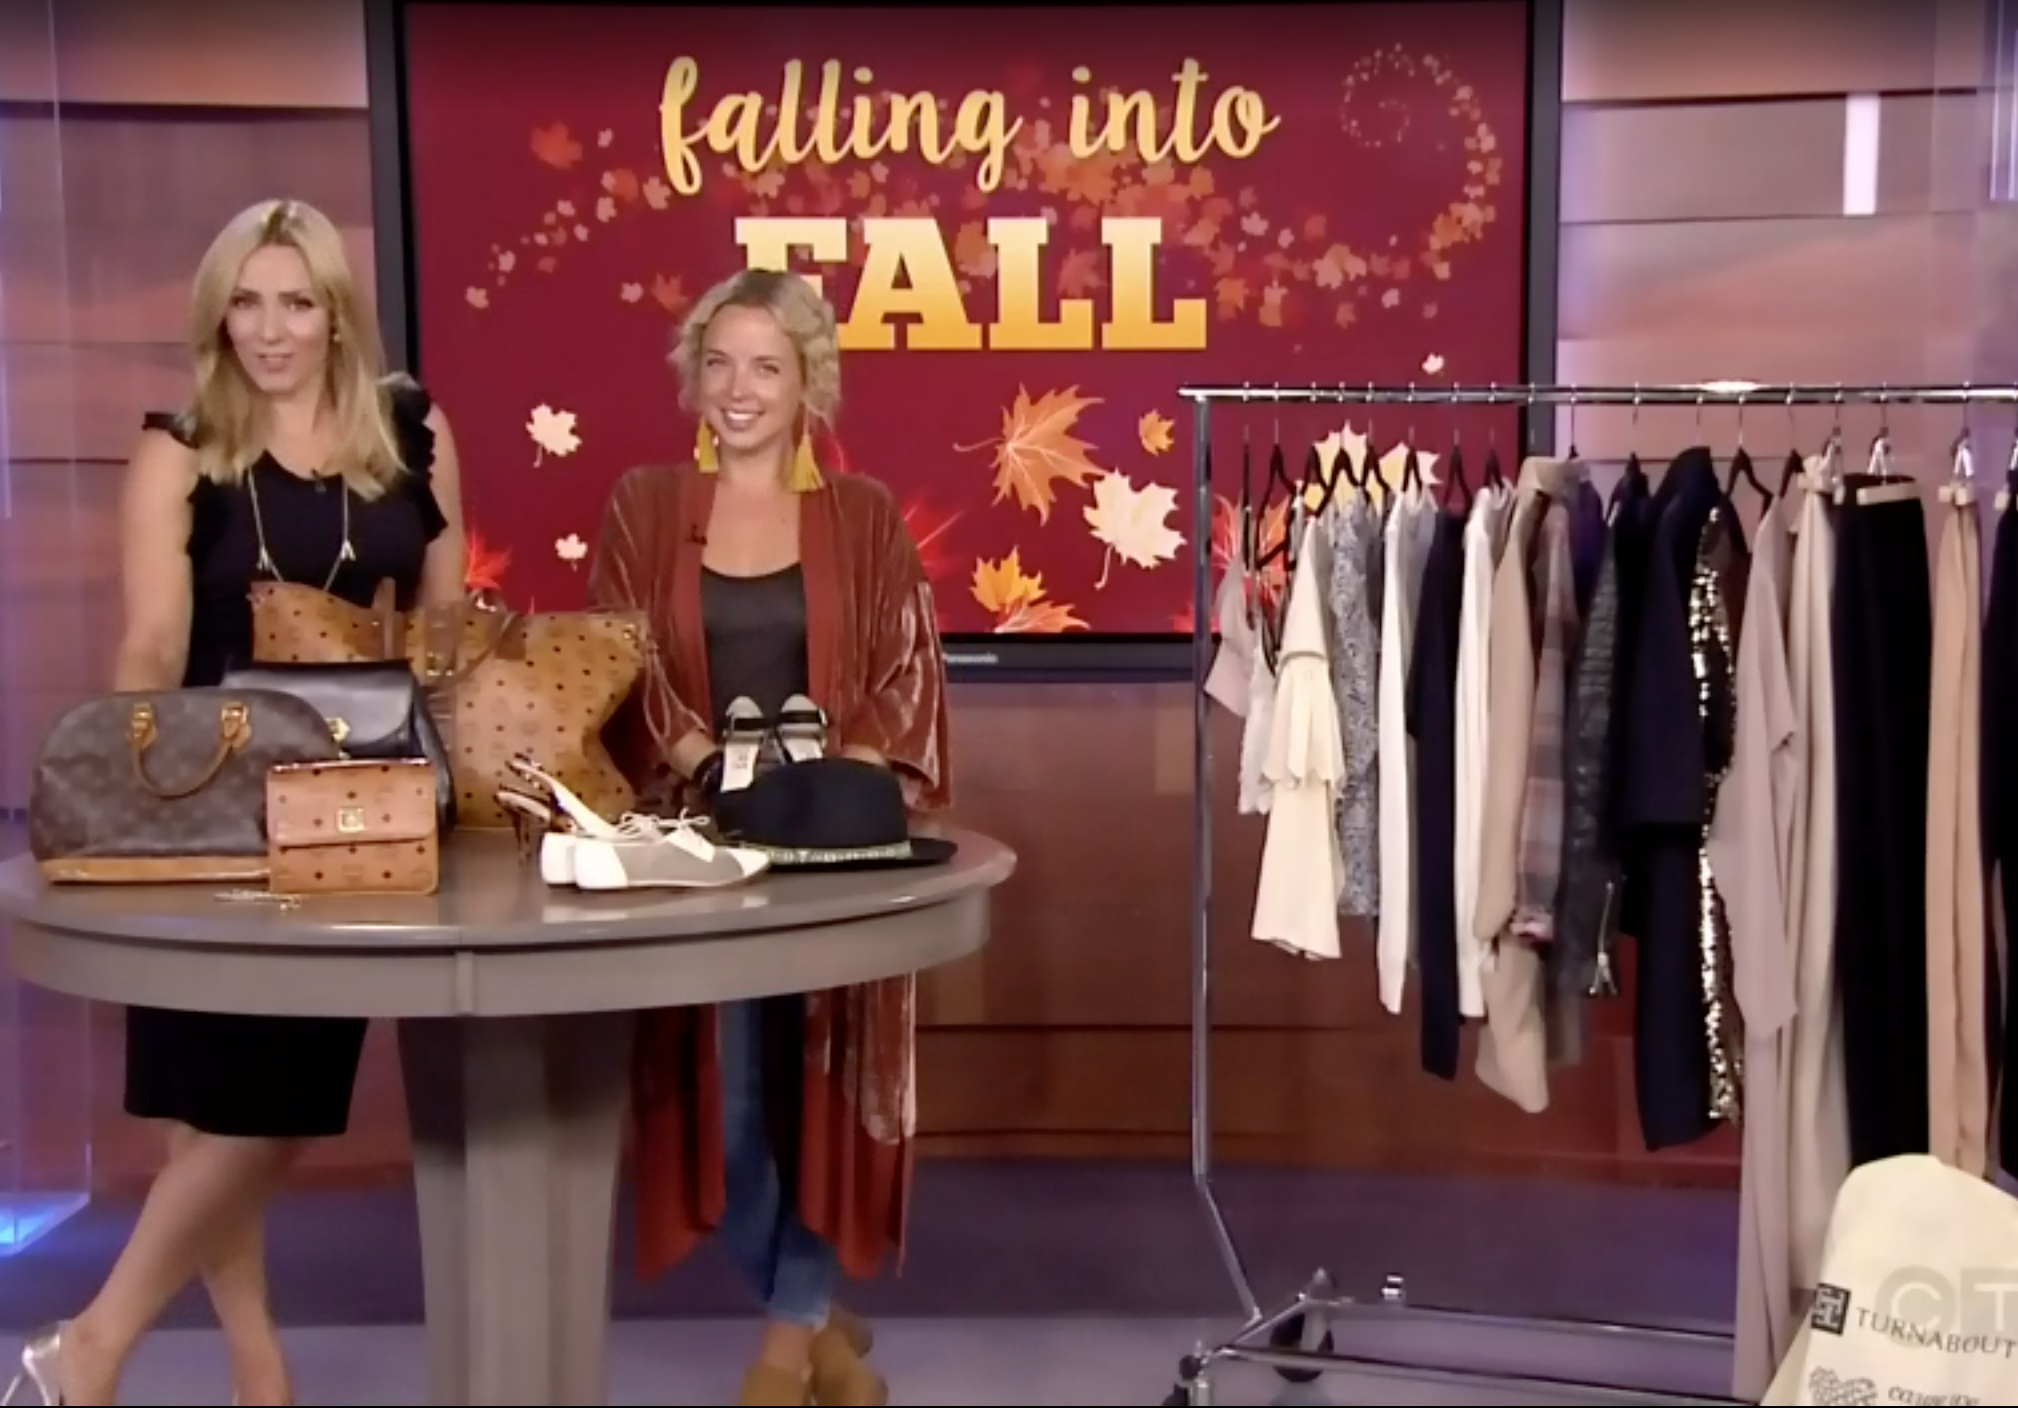 CTV Morning Live: My top tips for buying + selling consignment fashion